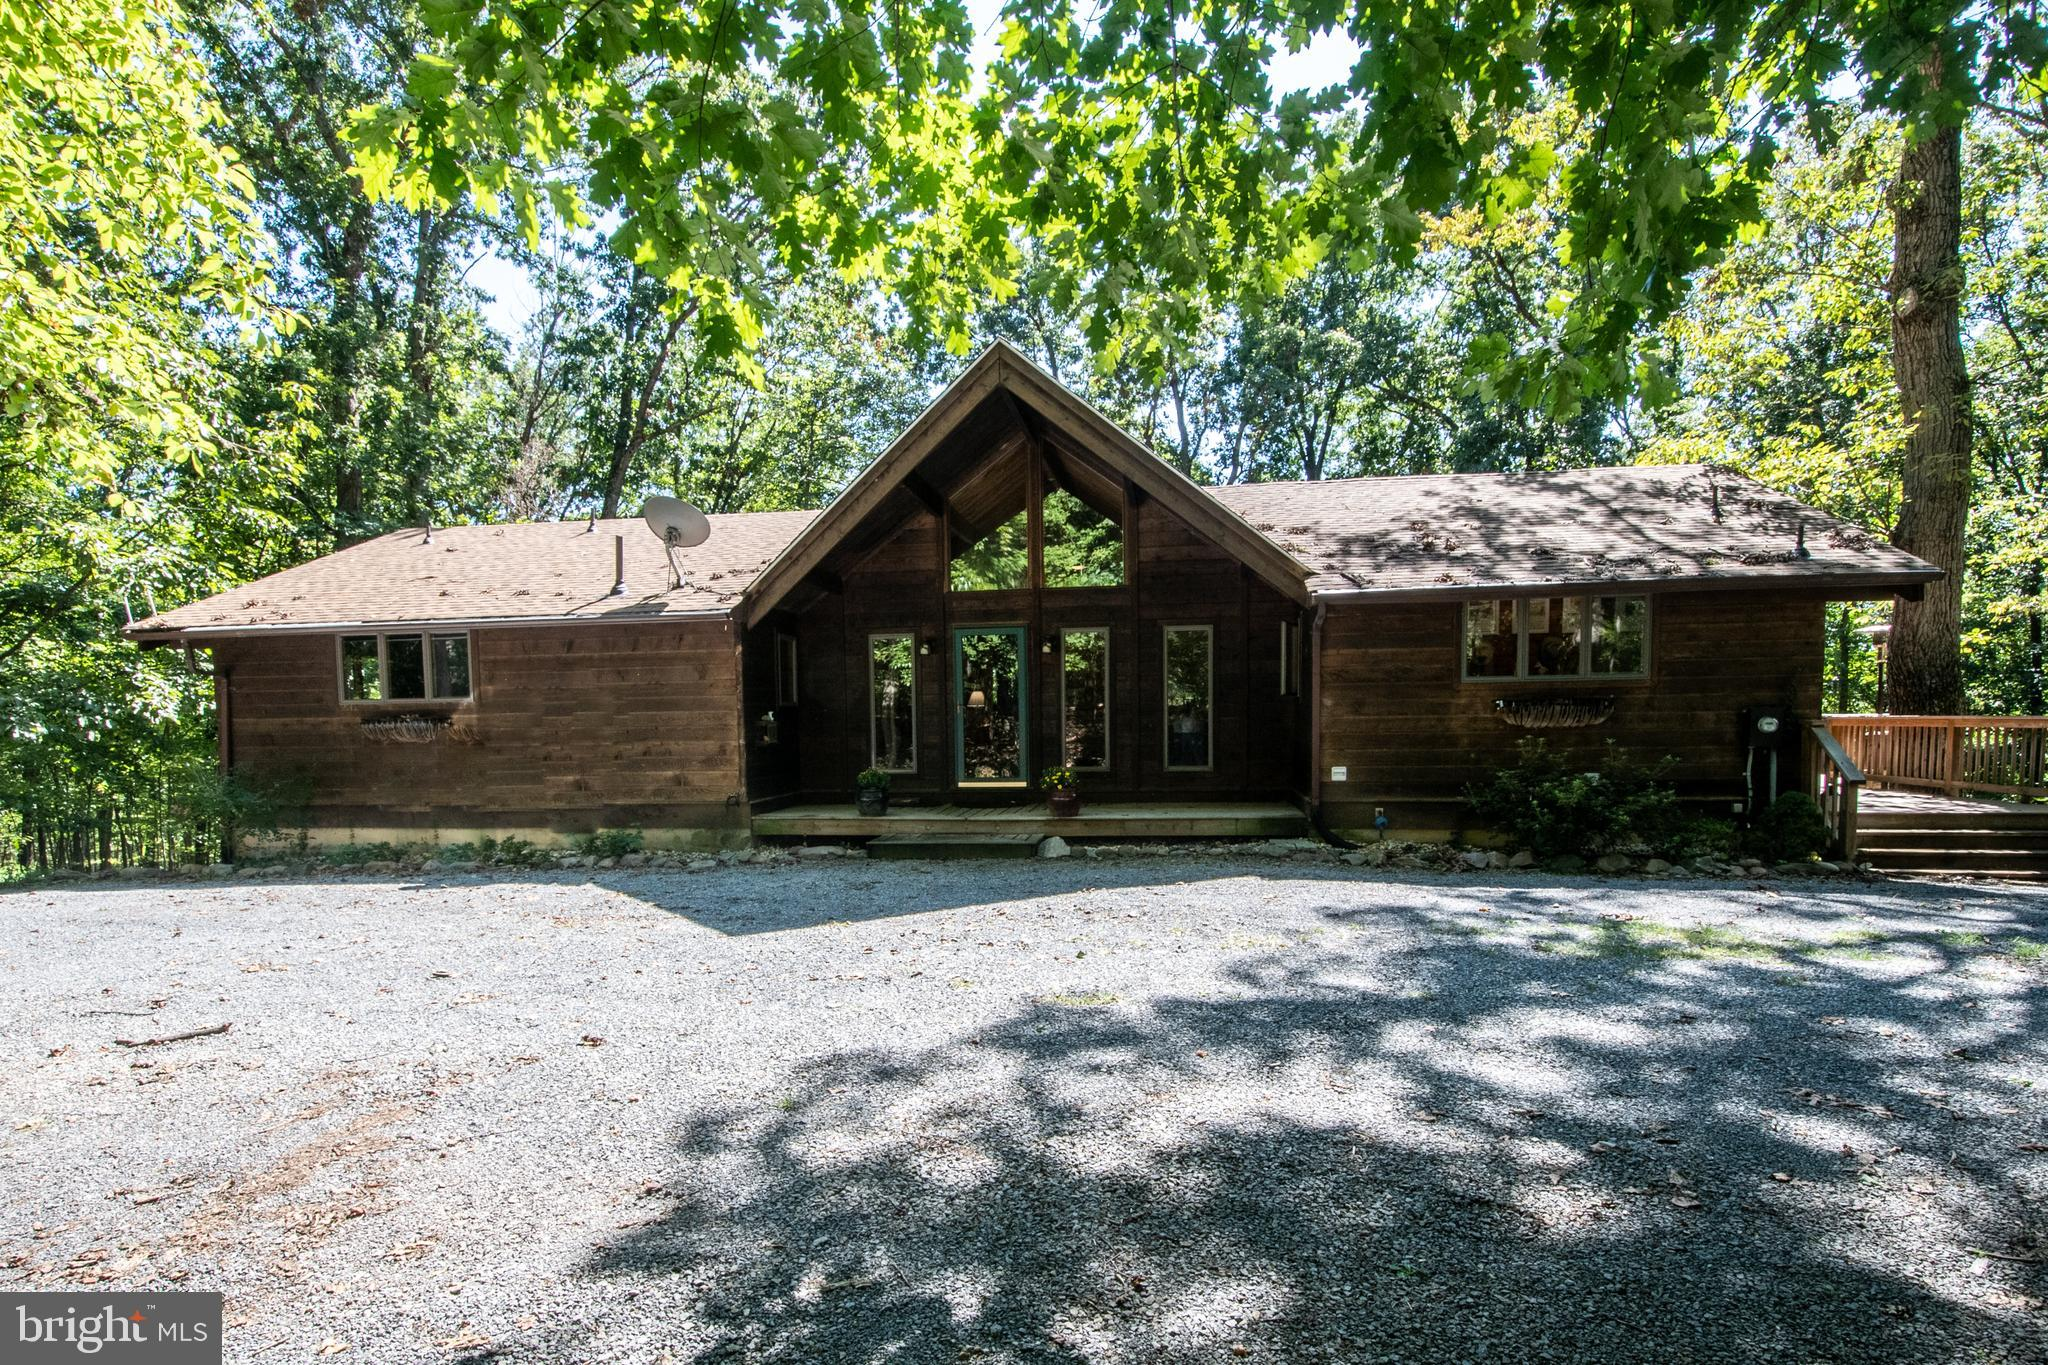 Awesome Cedar/Log style home on your private 5.07 acres is nestled in the woods, amidst the forest c